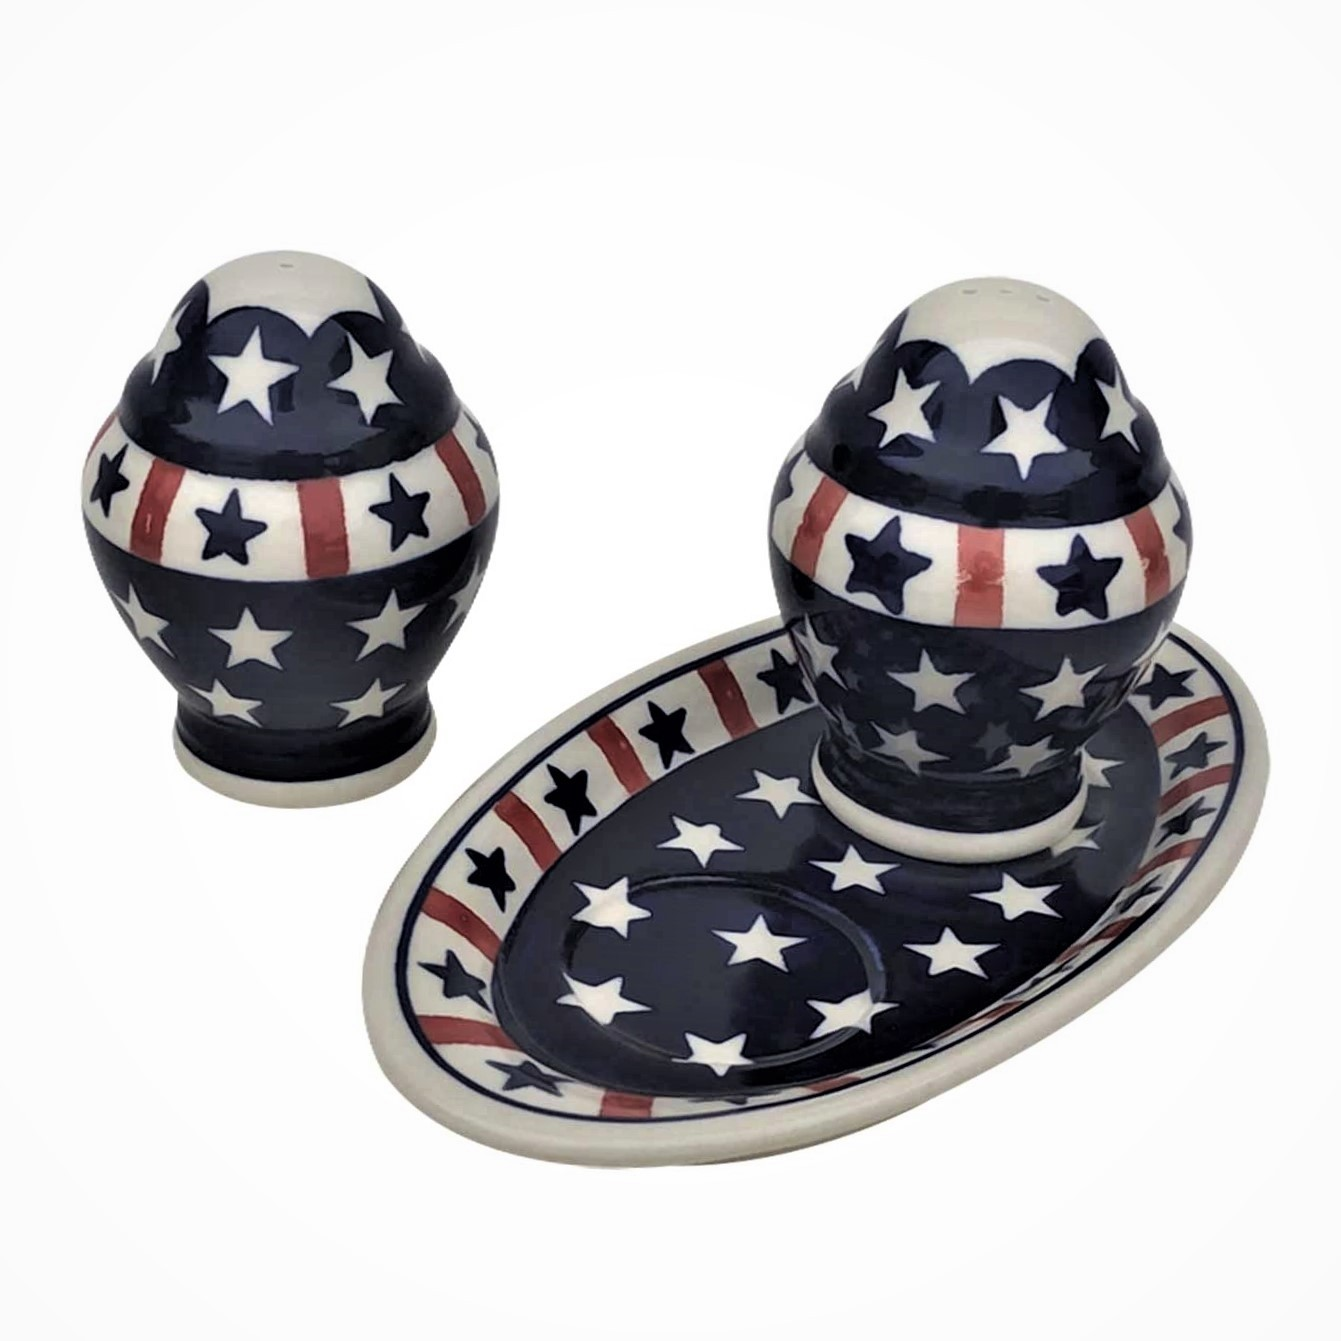 Pottery Avenue Americana 3pc Stoneware Salt and Pepper with Tray - 1284-961-927